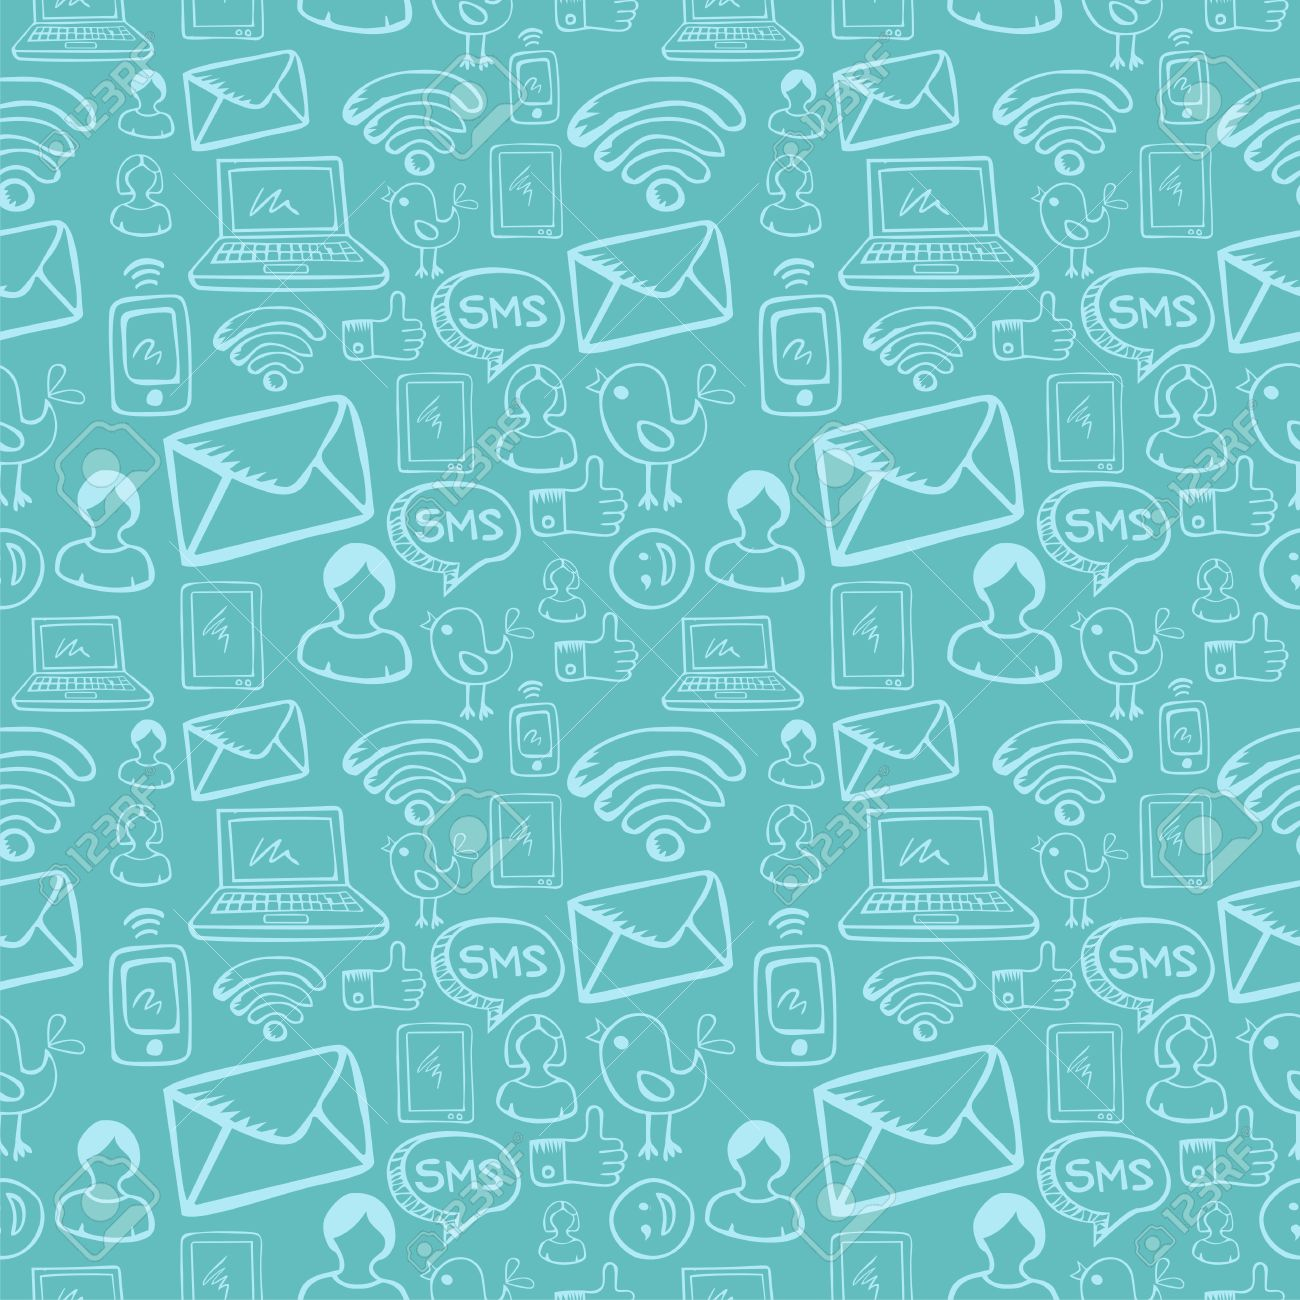 Social media cartoon icons seamless pattern over sky blue background file layered for easy manipulation and custom coloring Stock Vector - 14574523